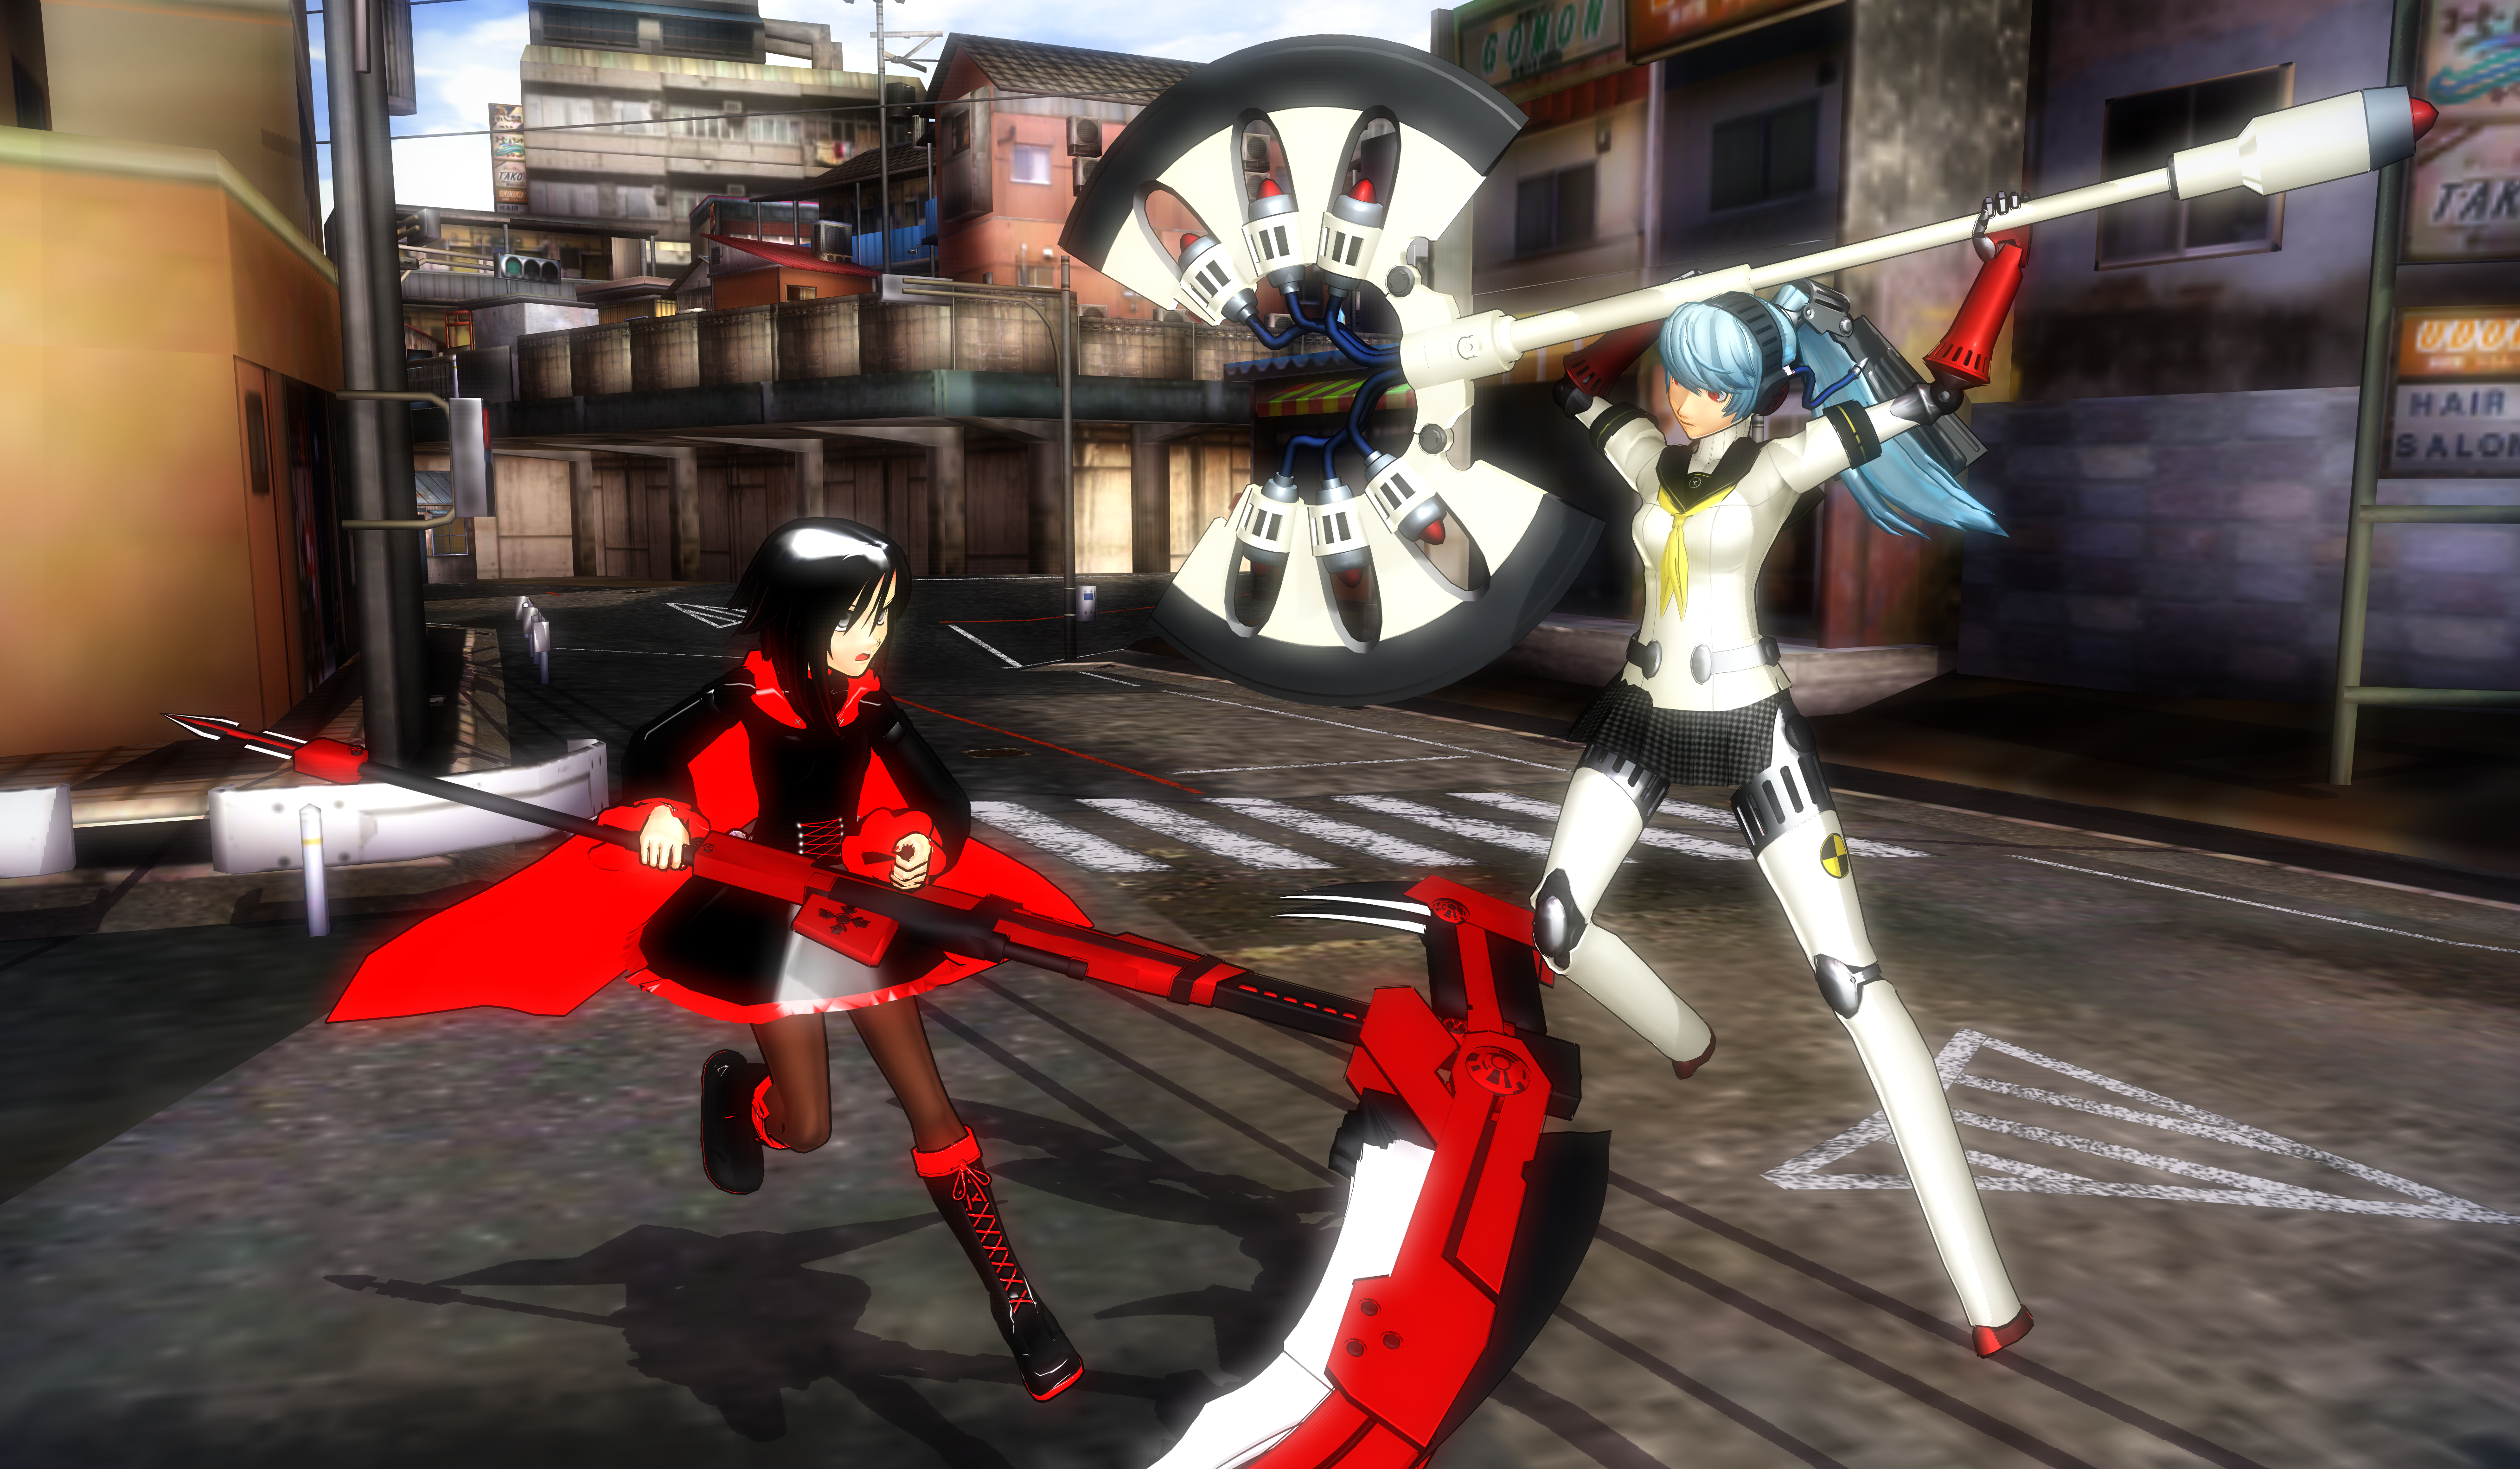 MMD:  Ruby Rose vs Labrys [RWBY + P4A] by Miku-Nyan02 on